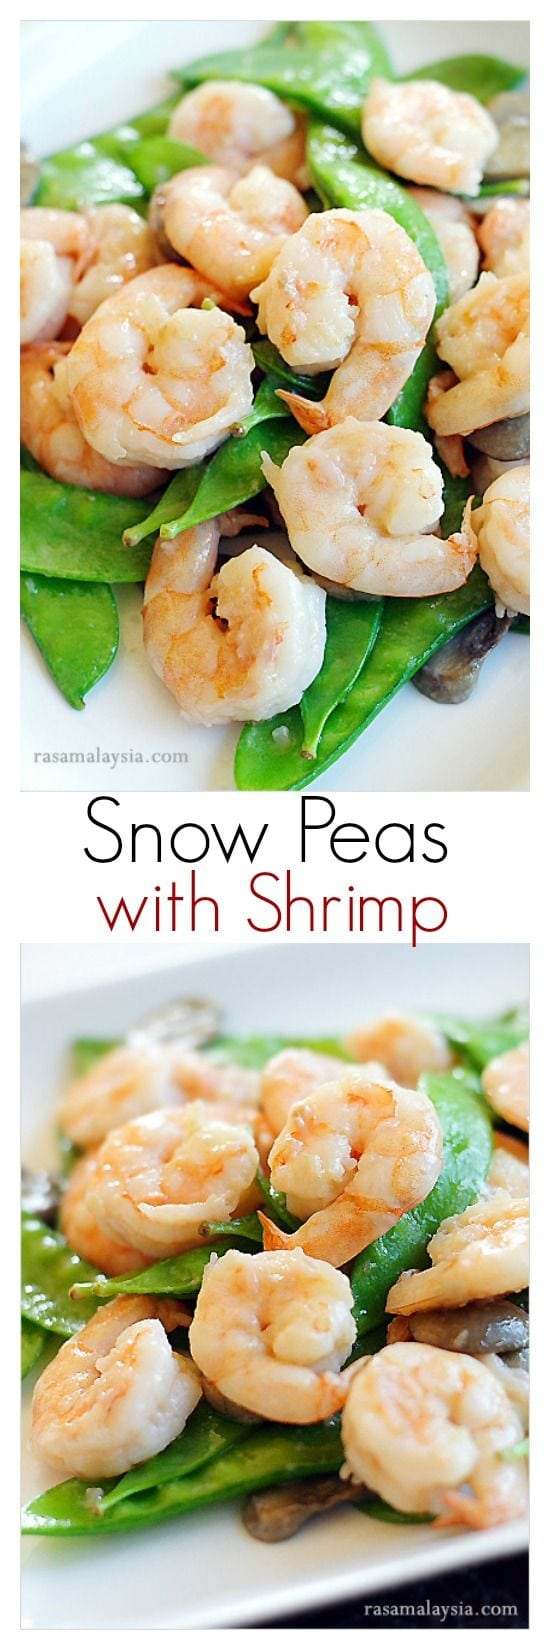 Shrimp with Snow Peas - super light and healthy recipe that takes 15 mins to make, and so delicious!!   rasamalaysia.com